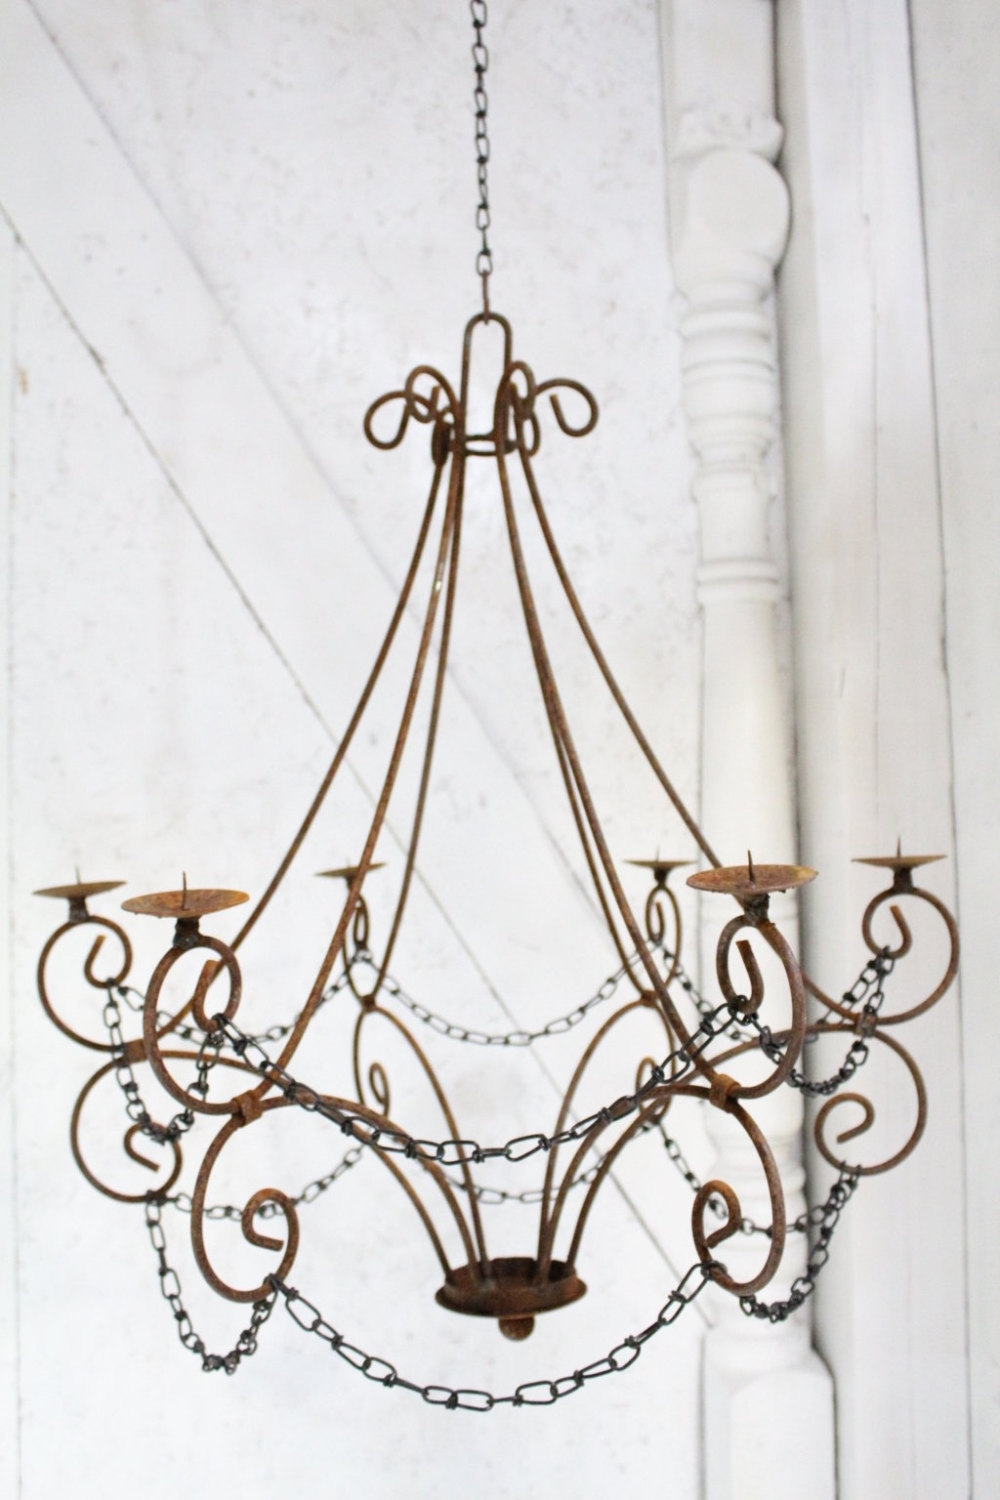 Hanging Candle Chandeliers With Well Known Hanging Candle Chandeliers You Can Or Diy Agreeable Chandelier Bulbs (View 9 of 20)